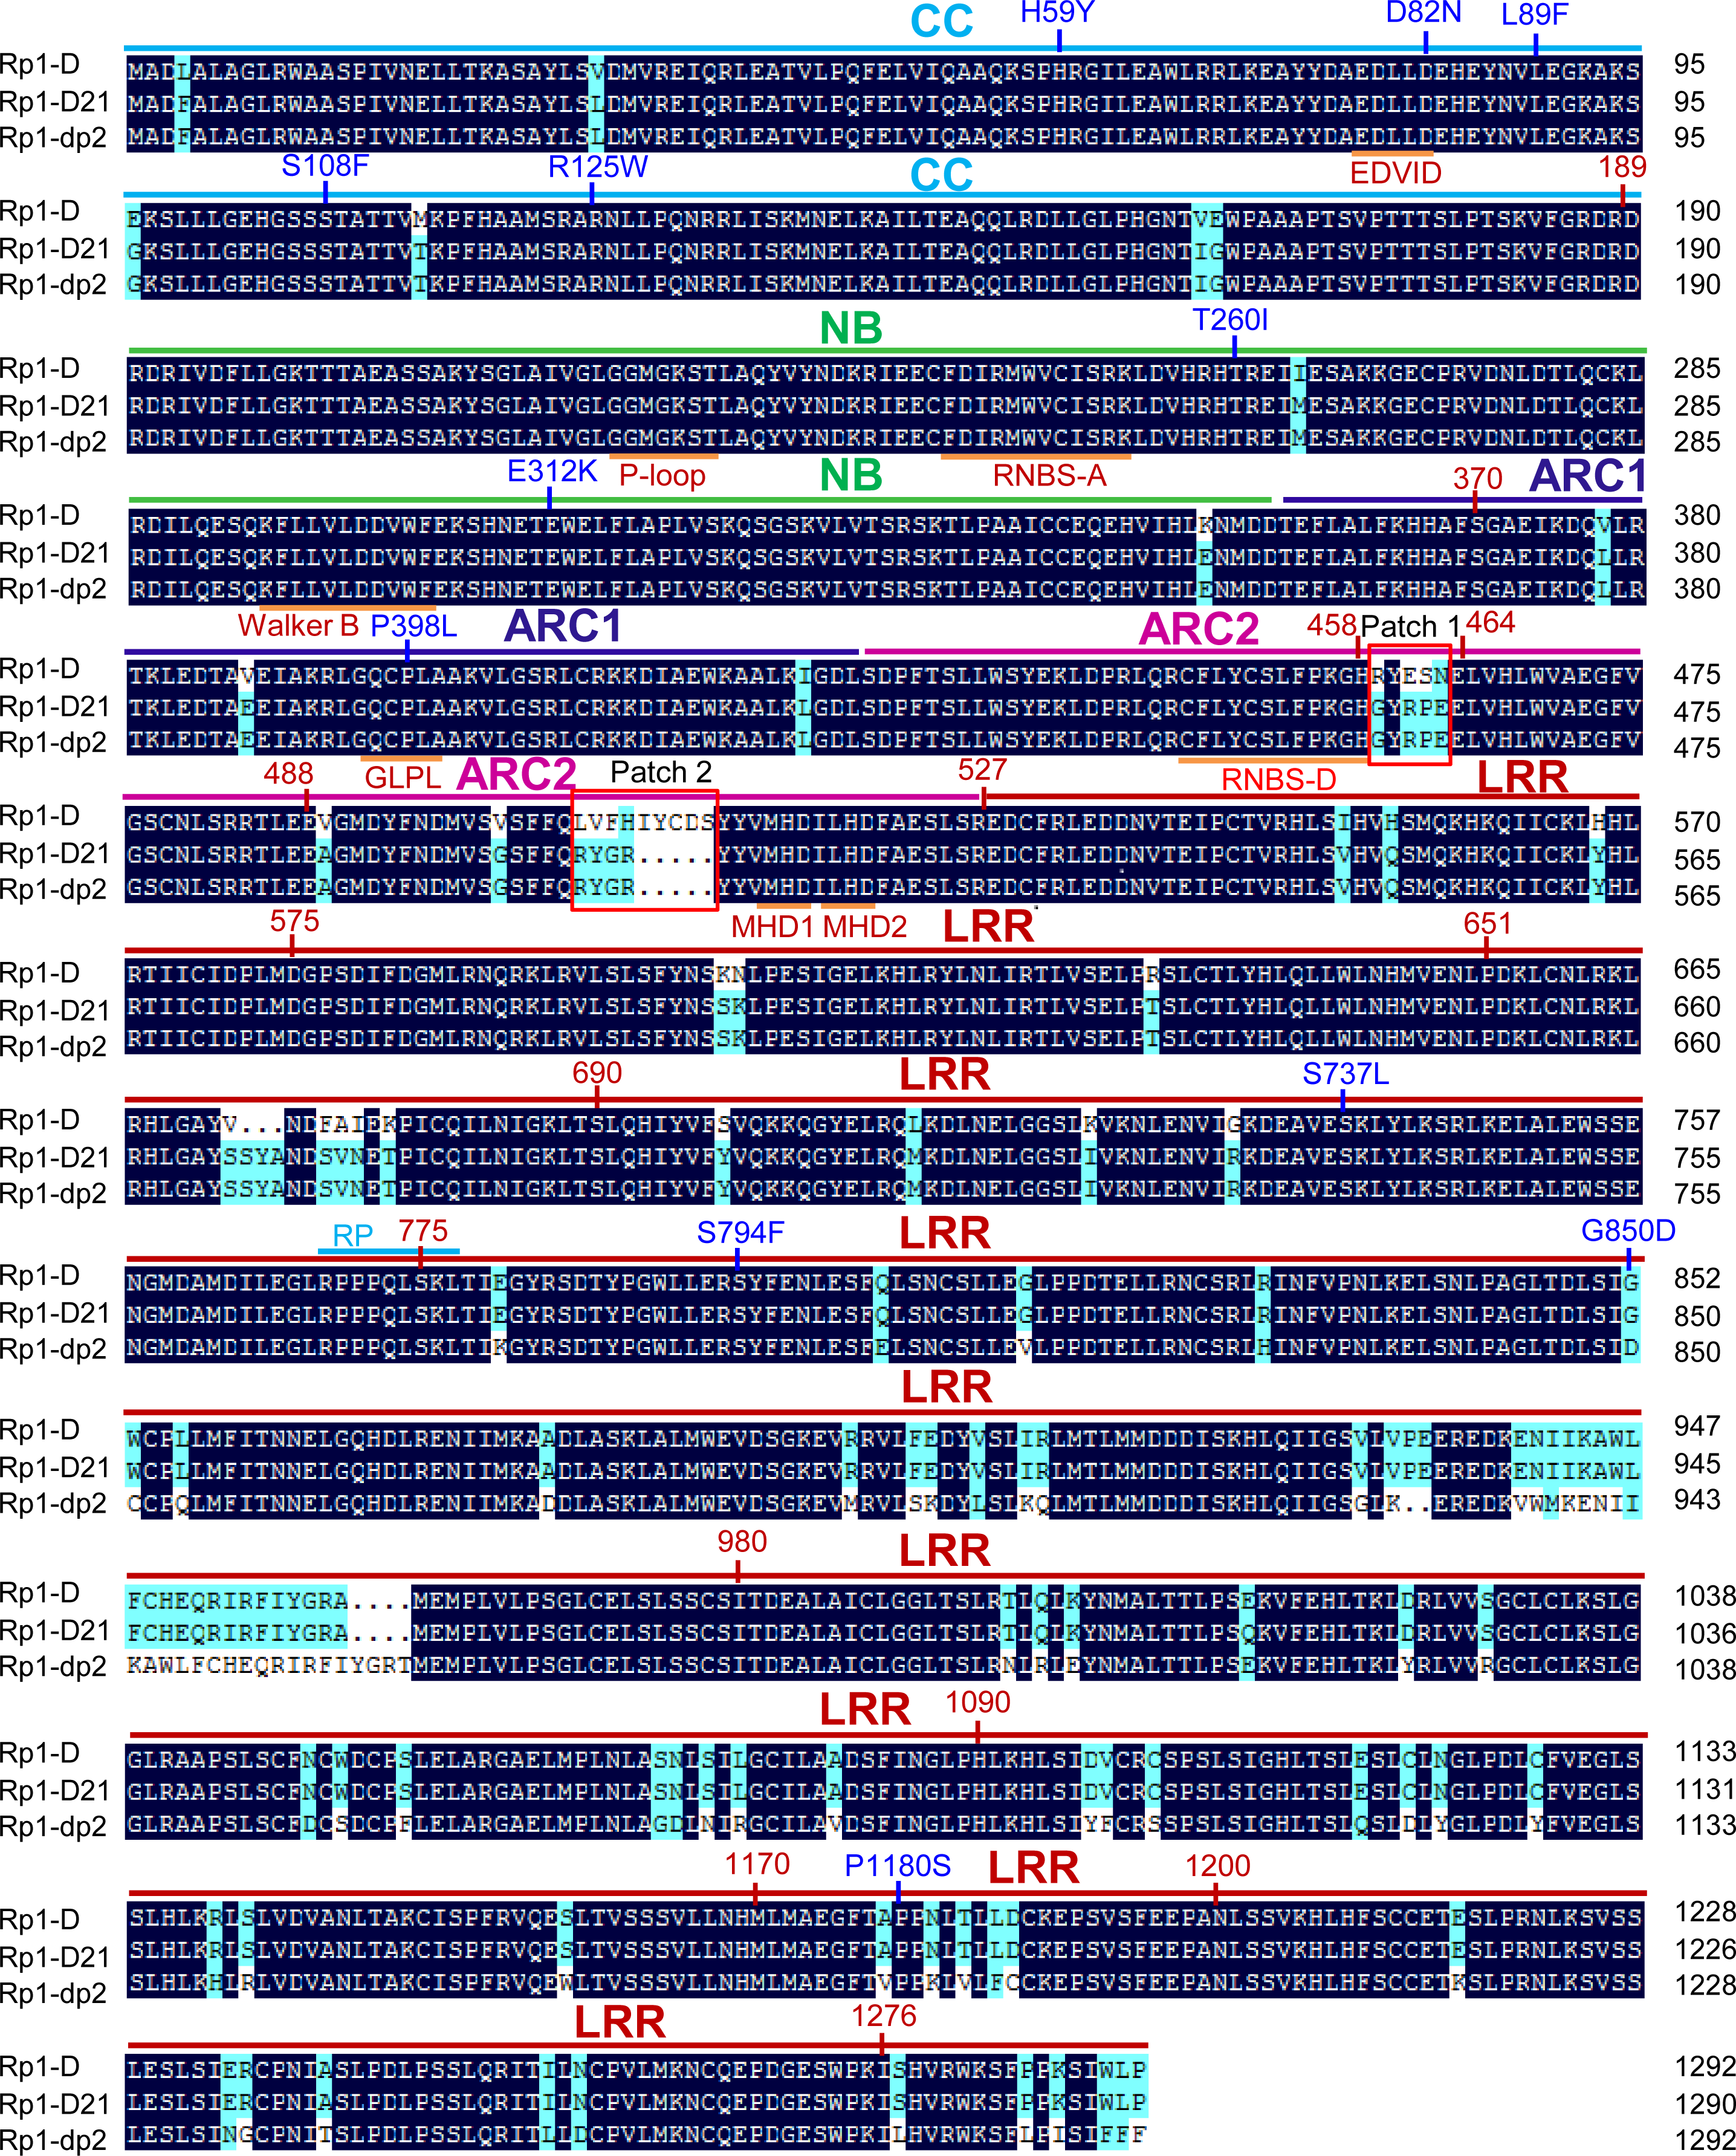 Sequence alignment of Rp1-D, Rp1-dp2 and Rp1-D21.